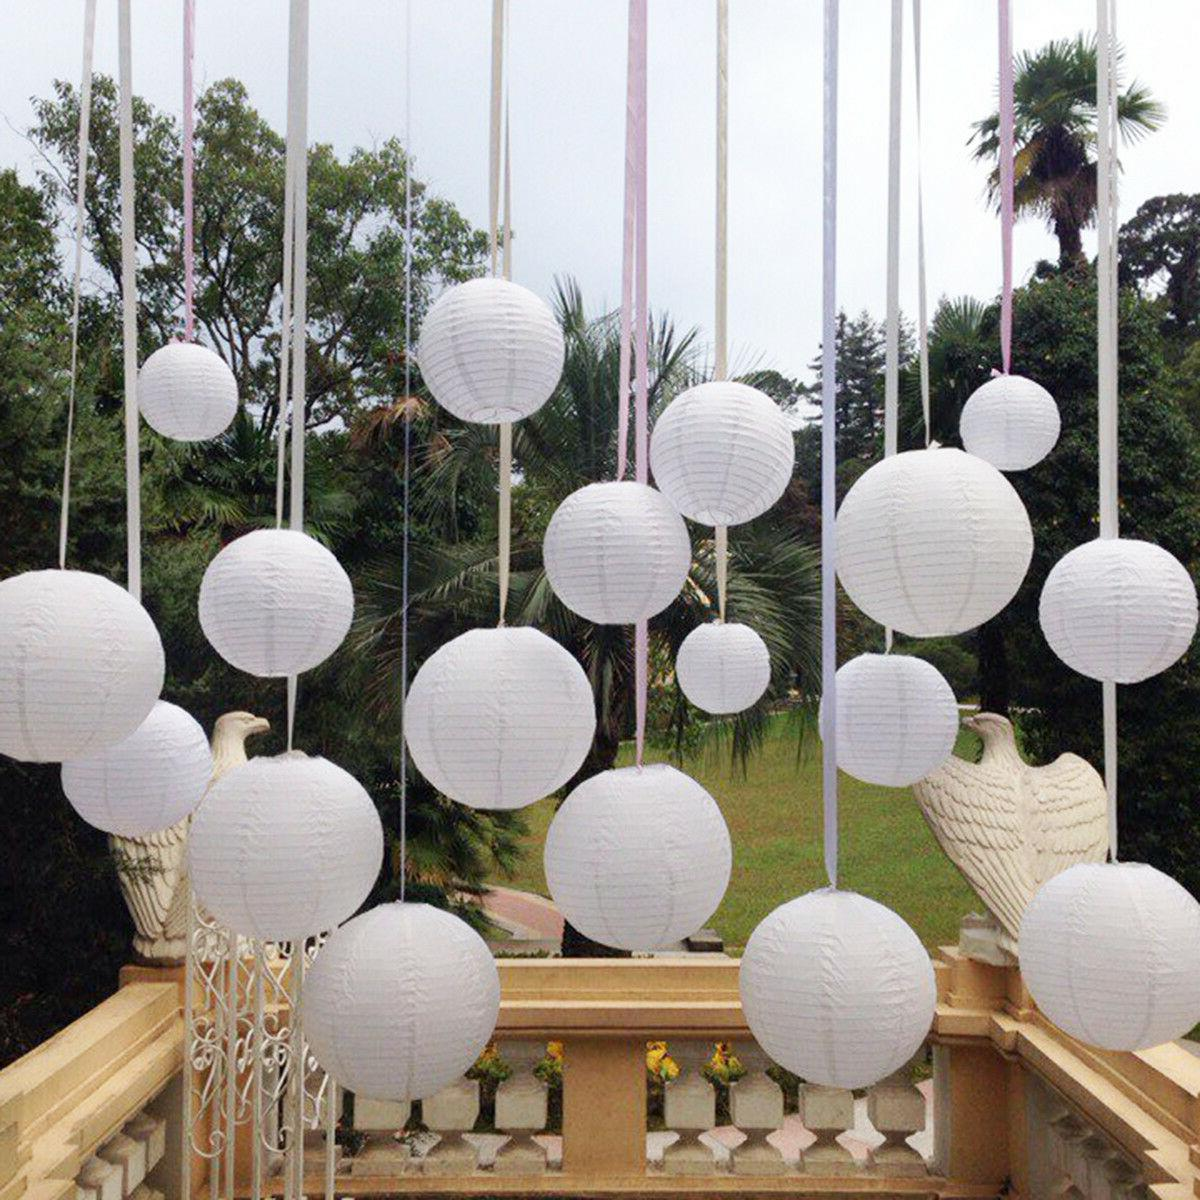 10pc White Chinese Paper Lanterns GRADUATION Party Decoratio